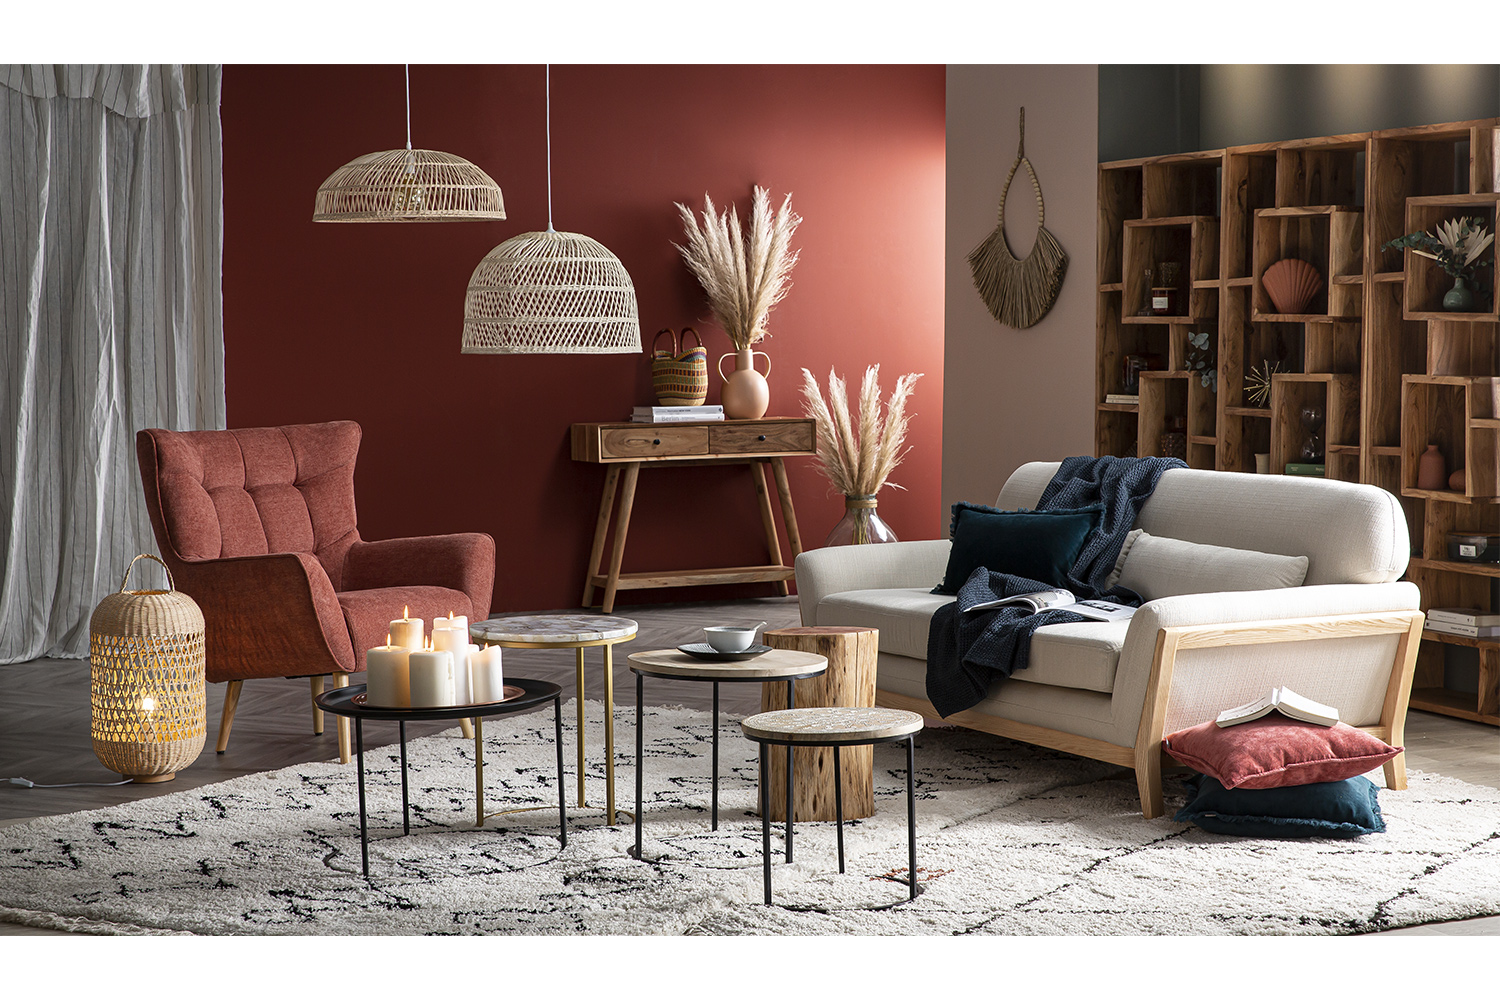 fauteuil-avery-terracotta-stephane-plaza